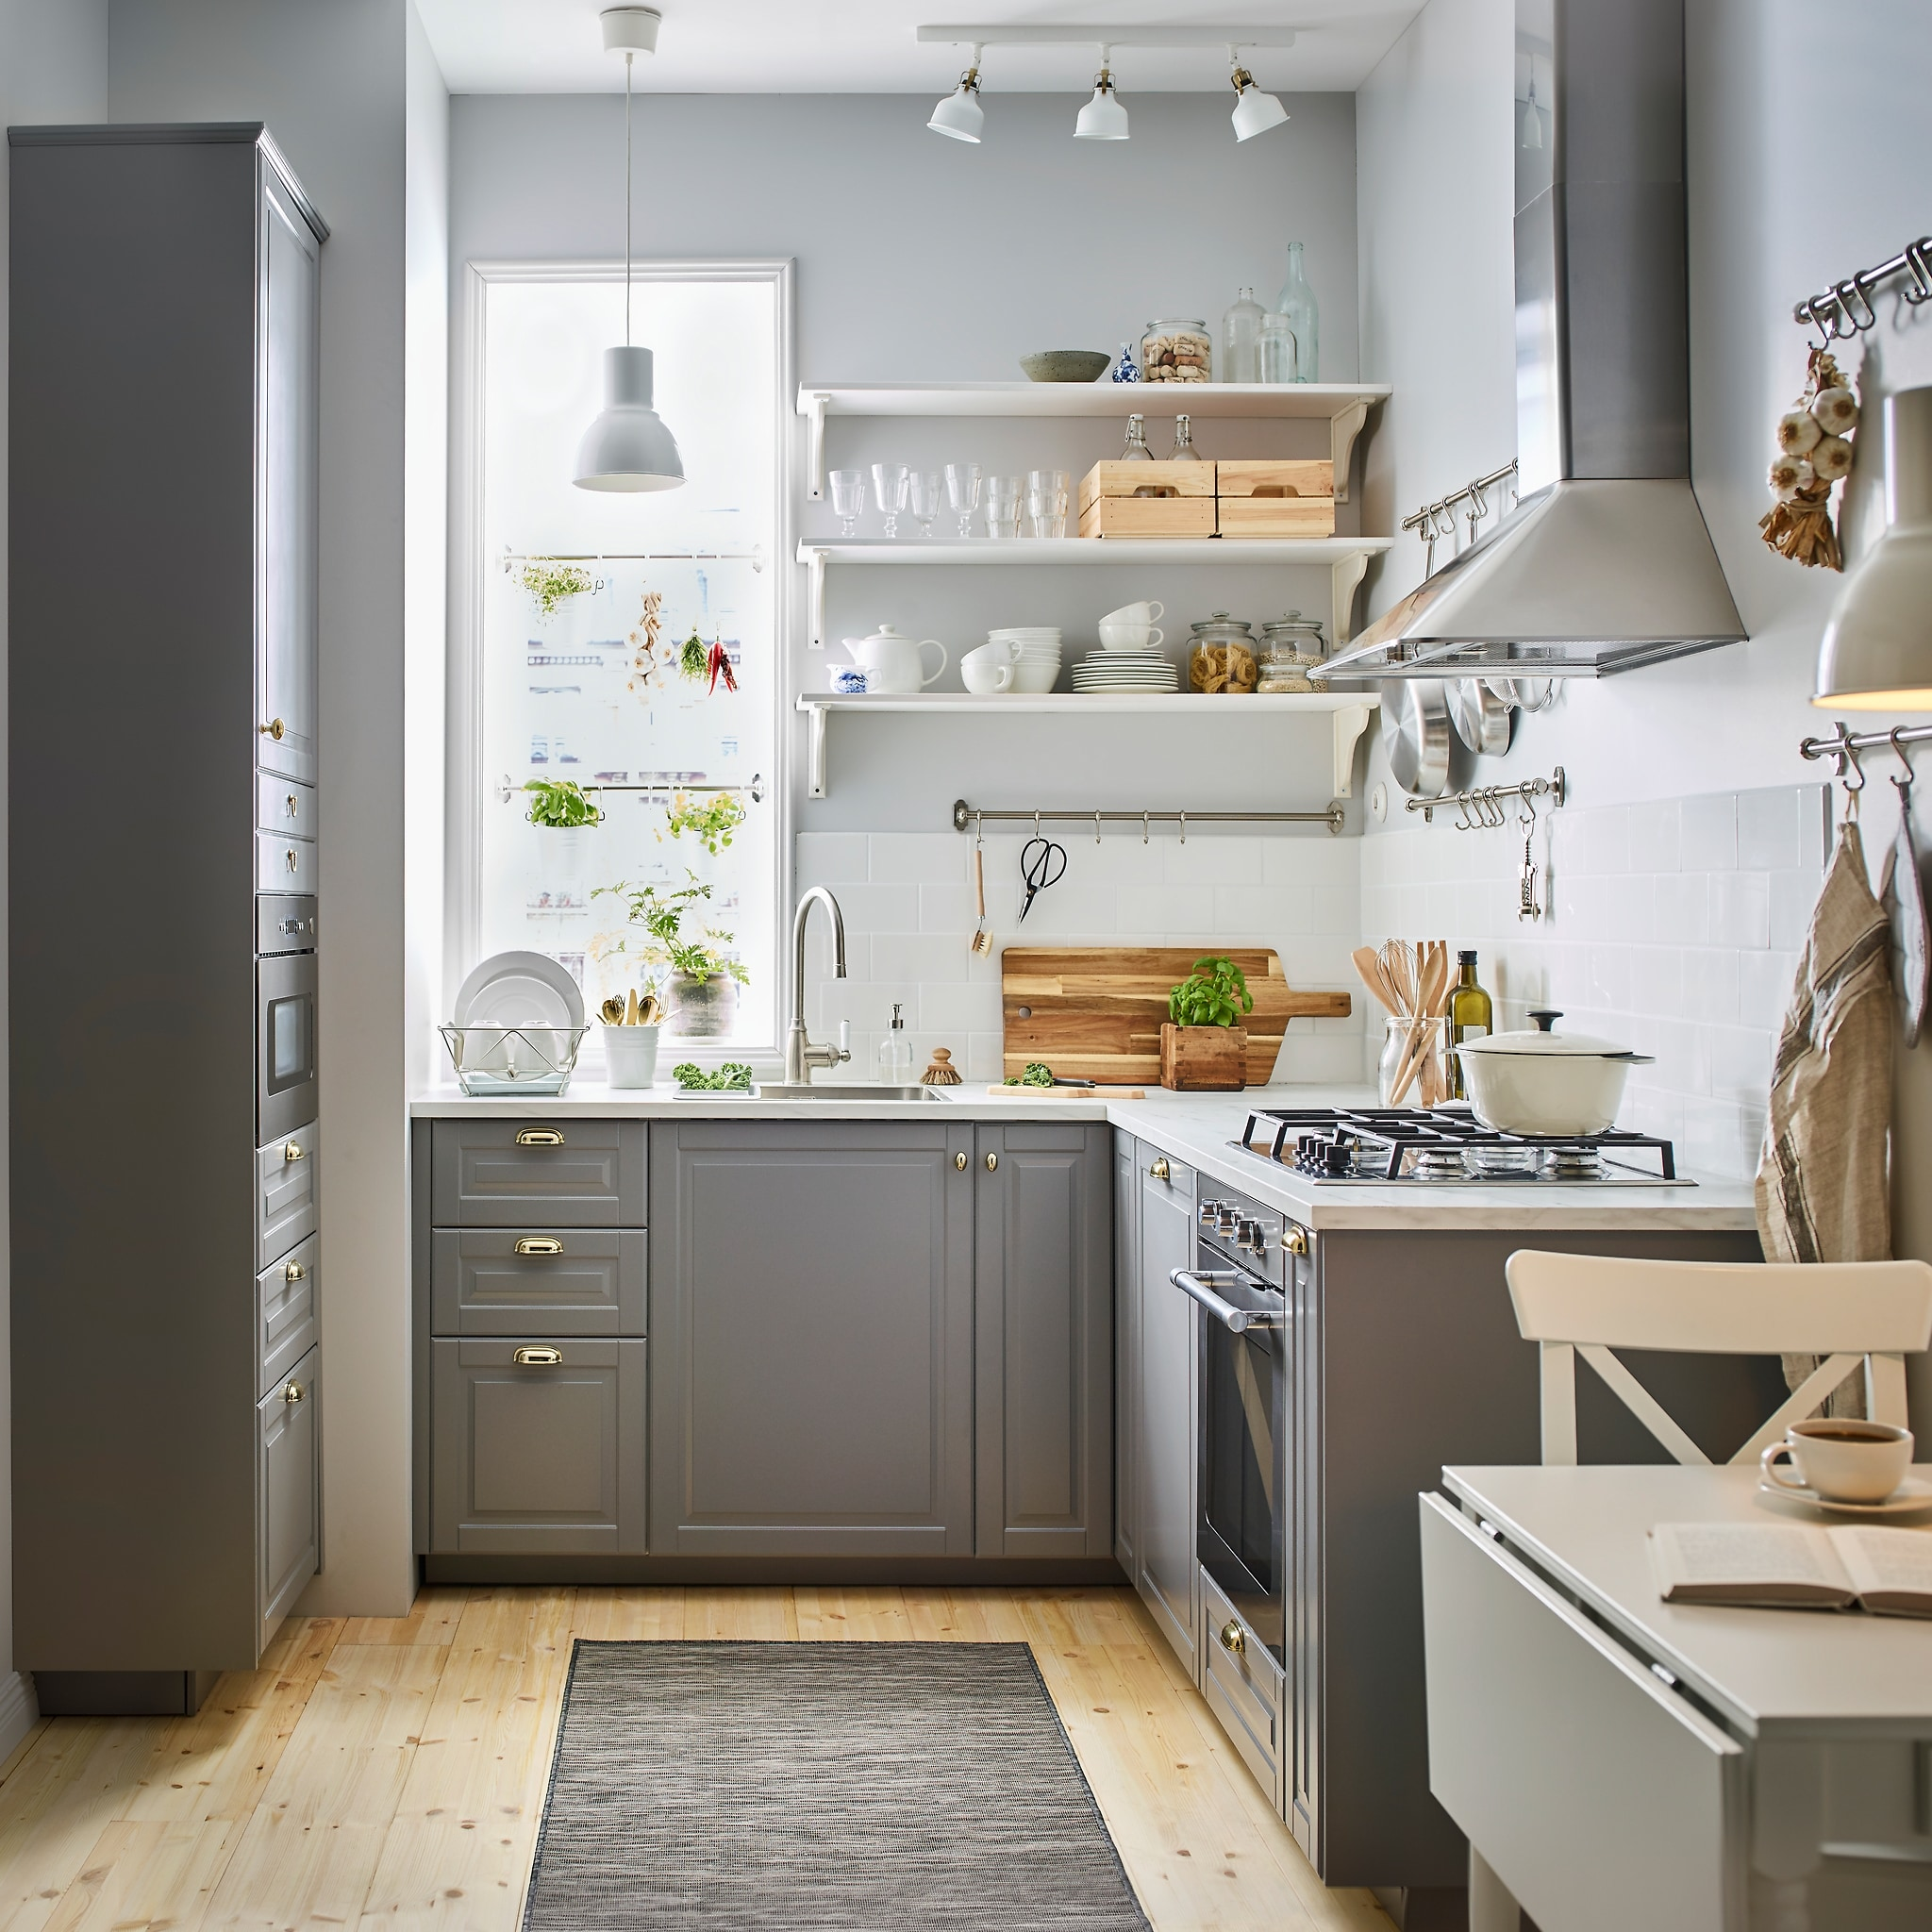 7 Smart Tips For The Small But Efficient Kitchen Ikea Uae Blog